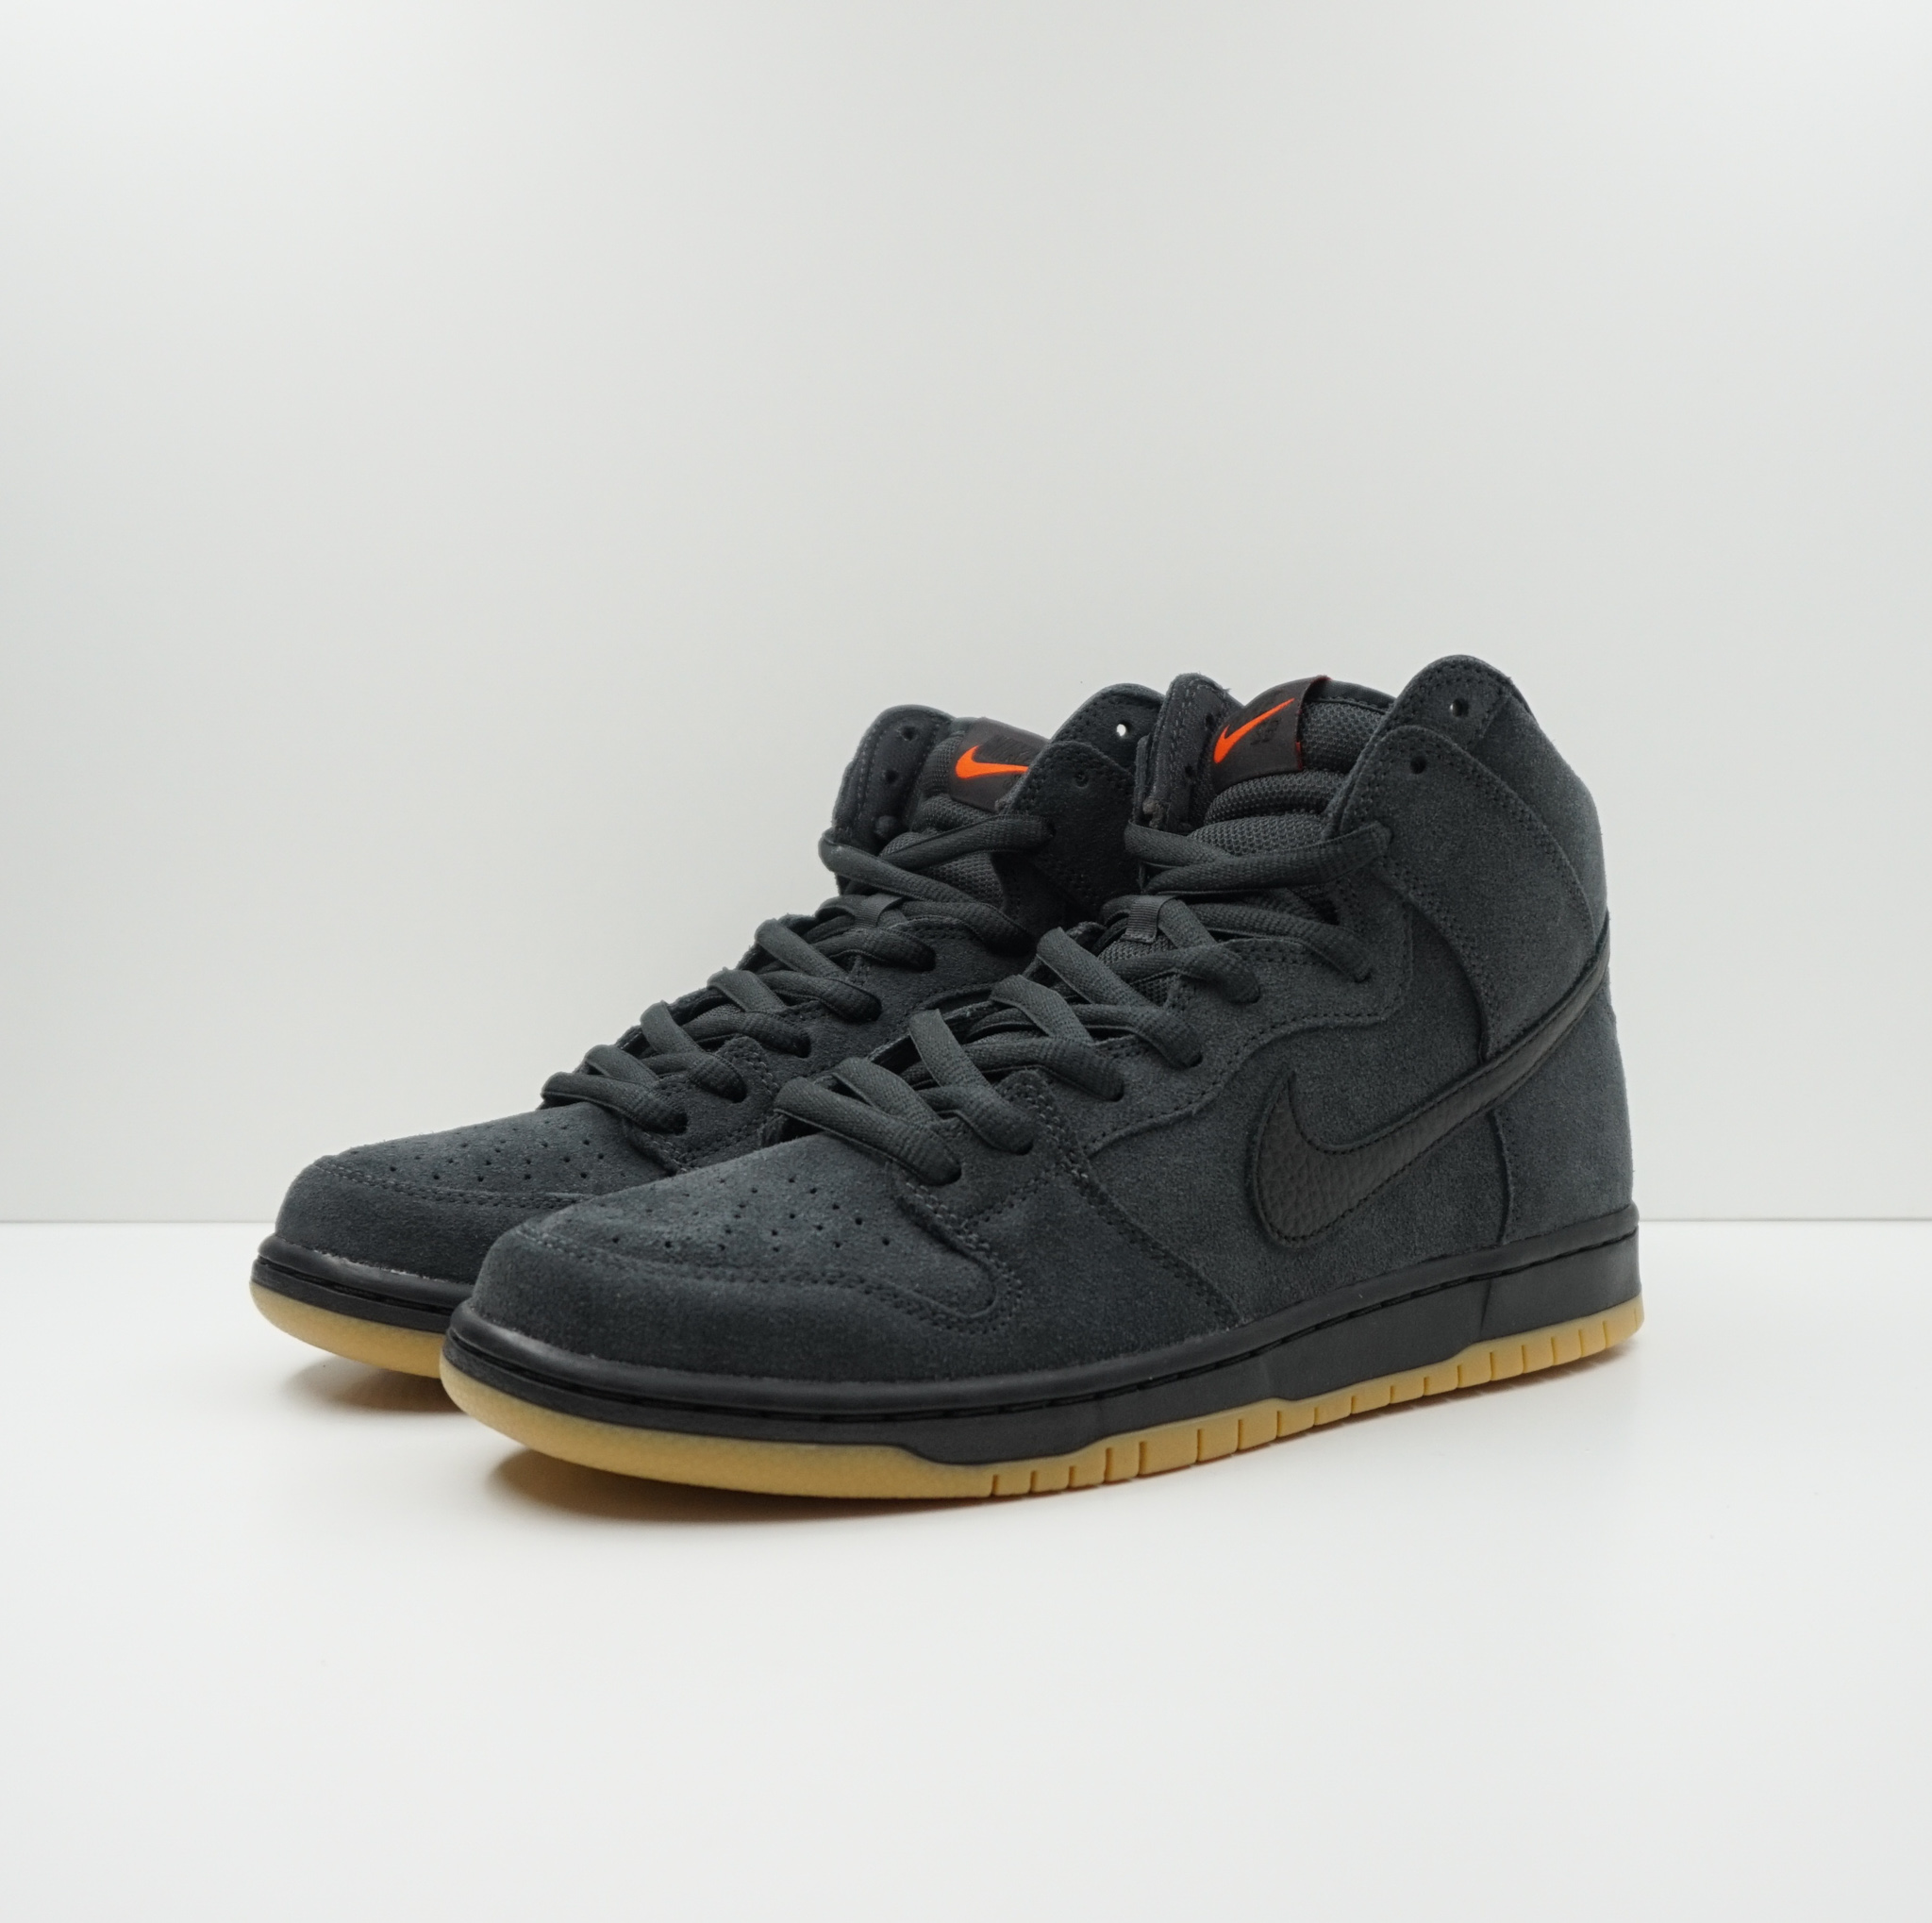 Nike SB Dunk High Pro Orange Label Smoke Grey